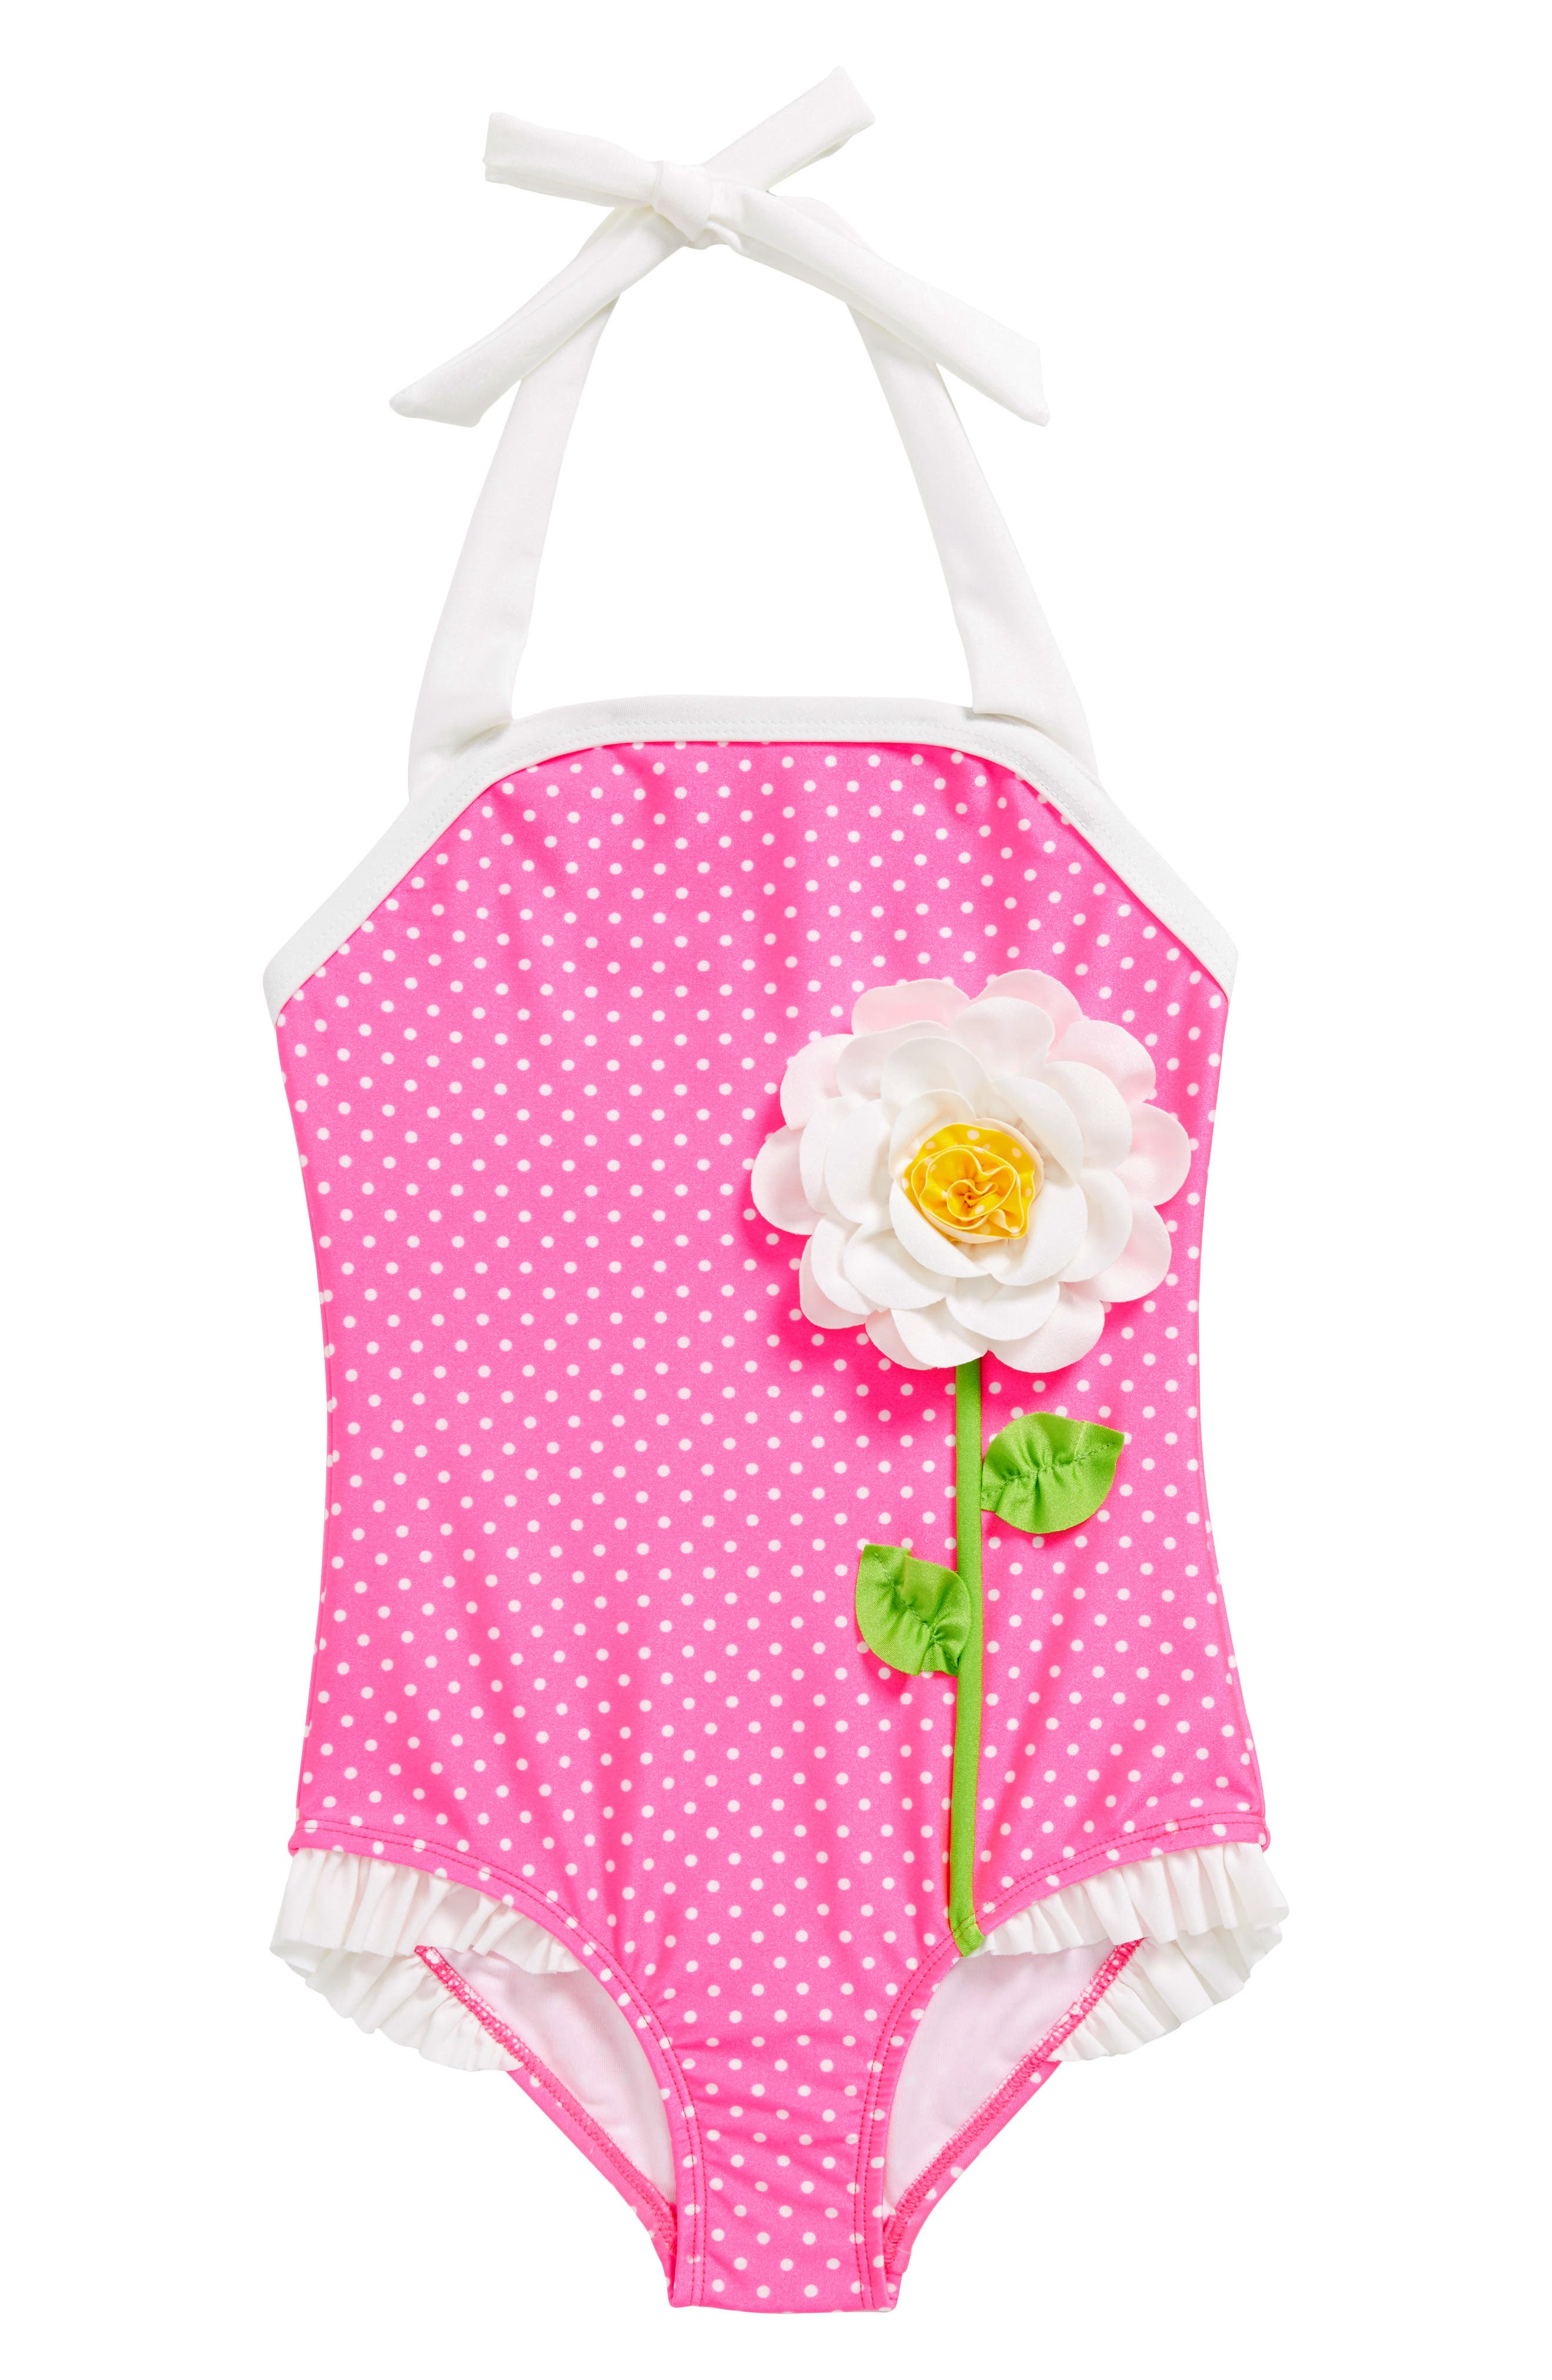 Main Image - Love U Lots Dot Print One-Piece Halter Swimsuit (Toddler Girls & Little Girls)